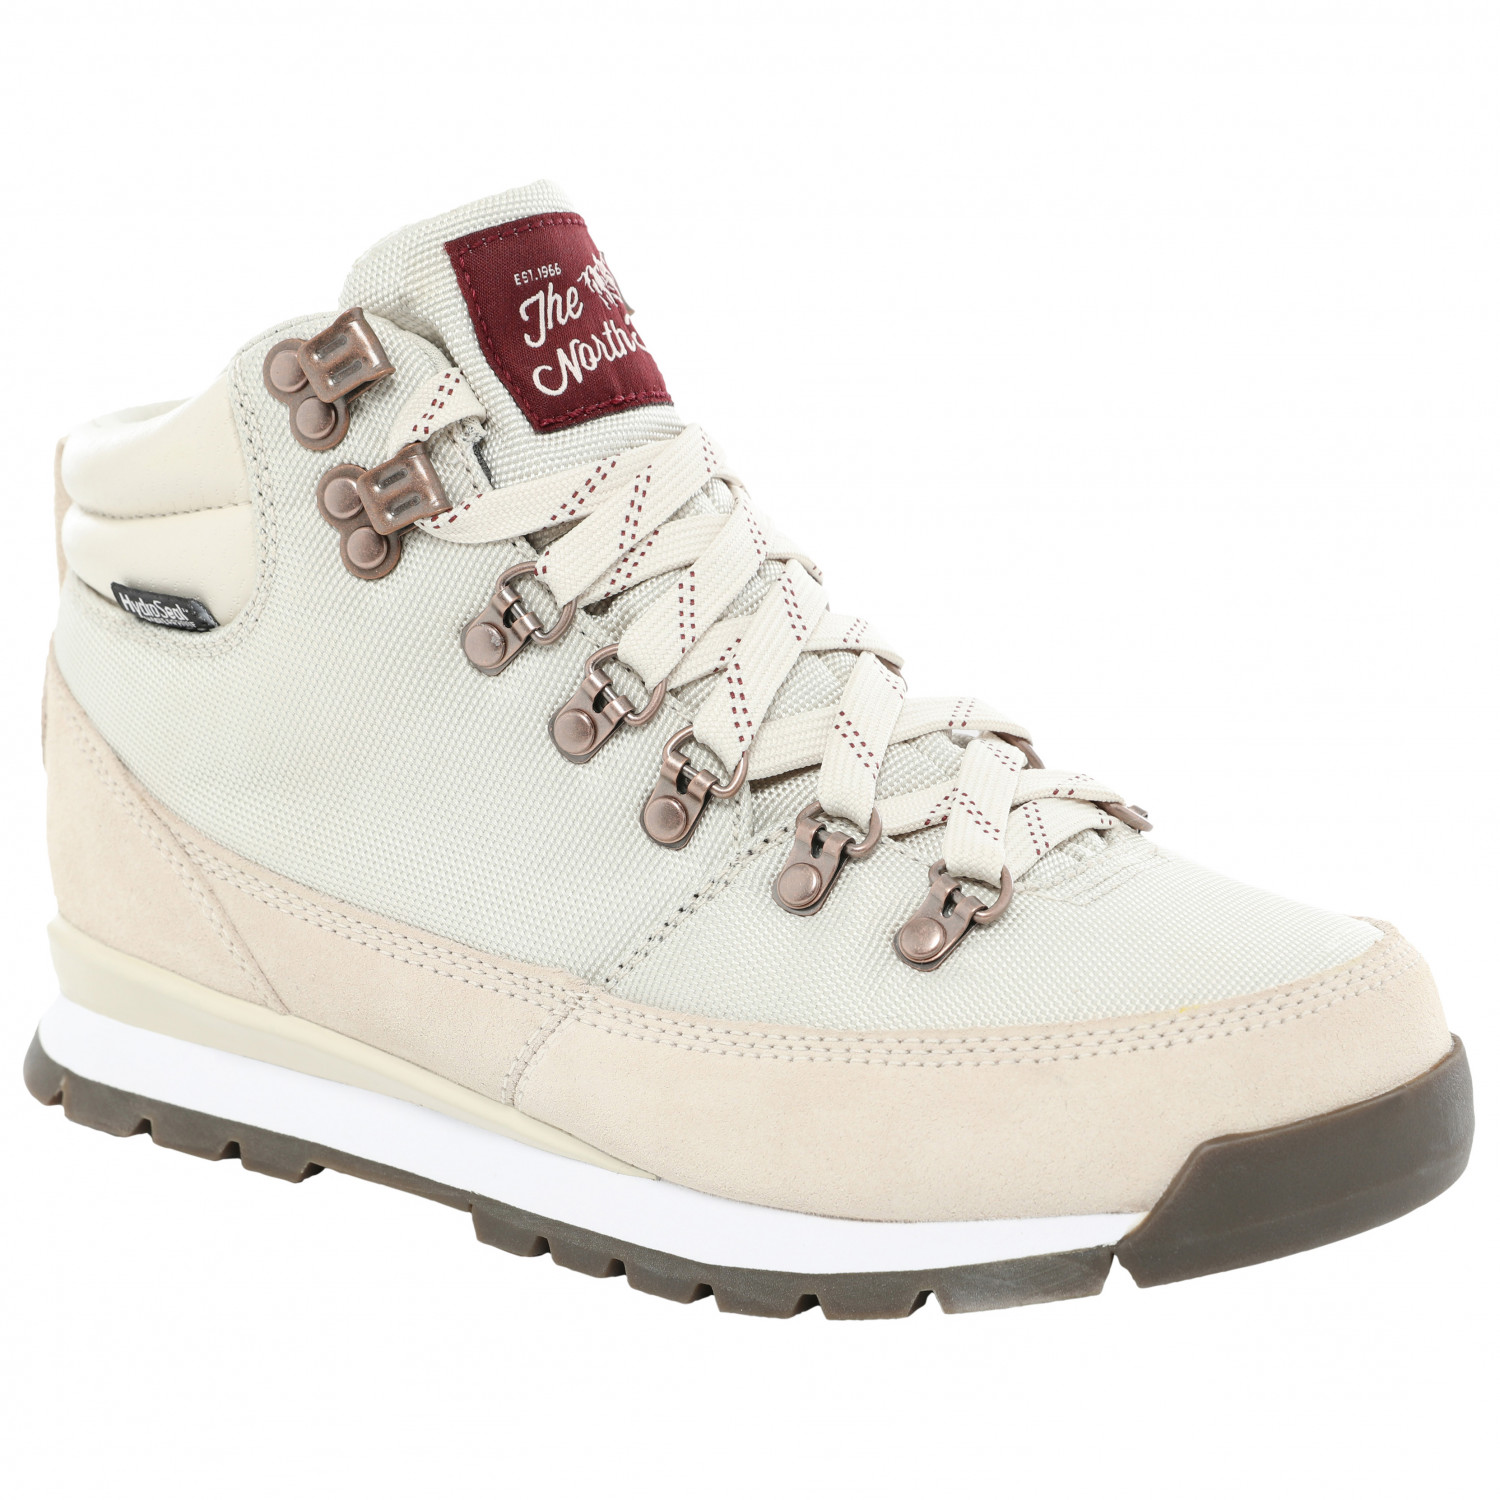 purchase cheap b395b cee30 The North Face - Women's Back-to-Berkeley Redux - Sneaker - Vintage White /  Deep Garnet Red | 060 (US)